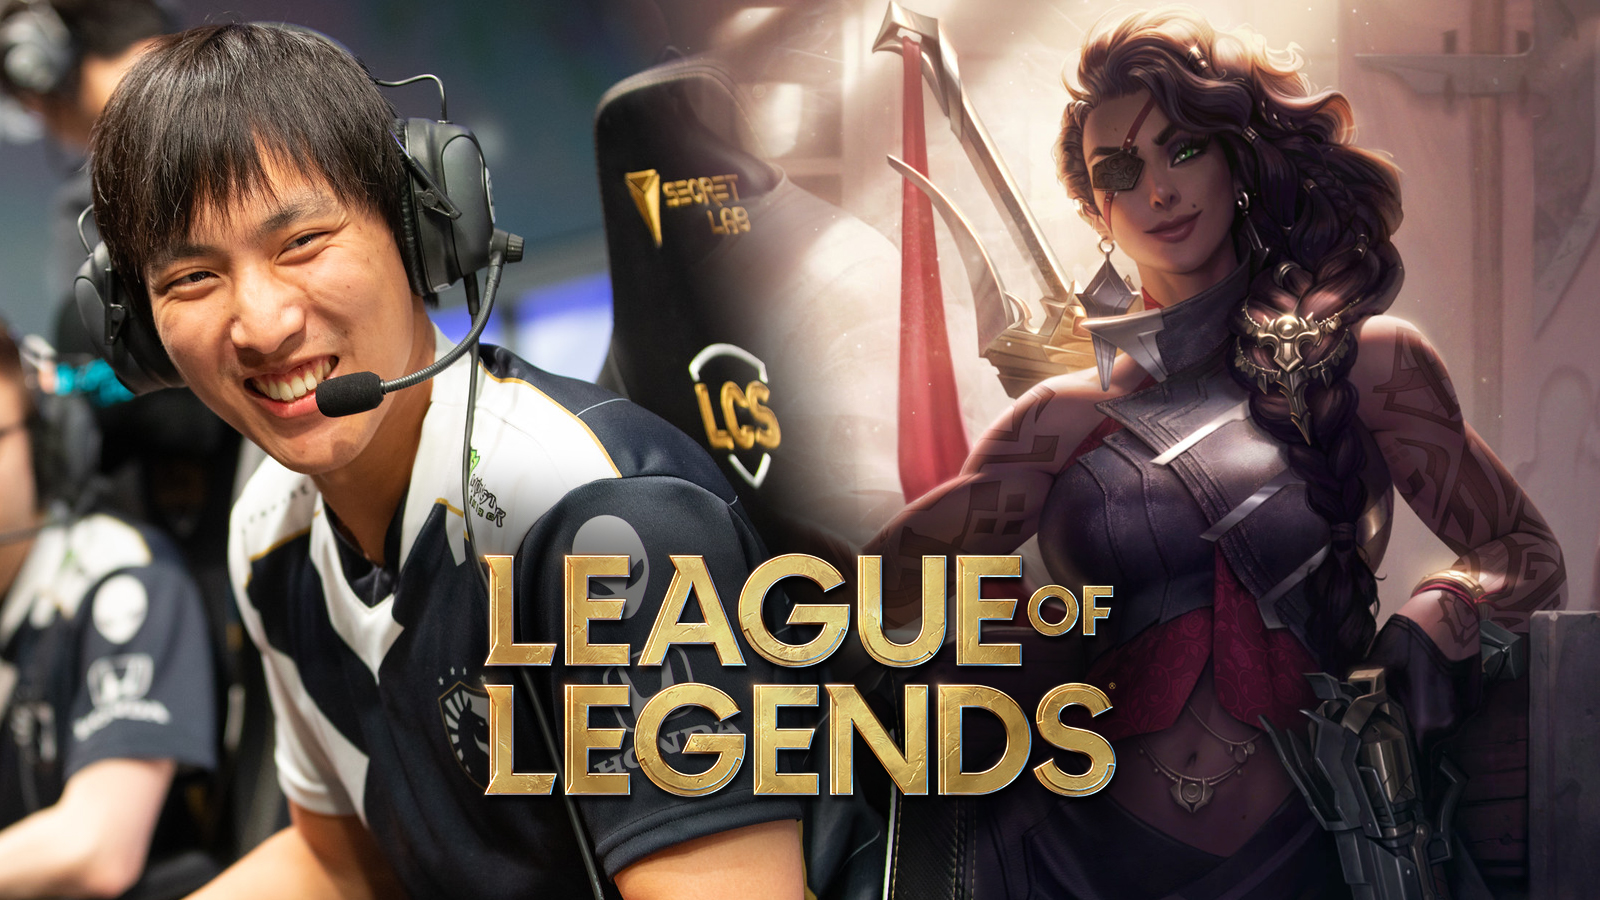 Doublelift and Samira in League of Legends